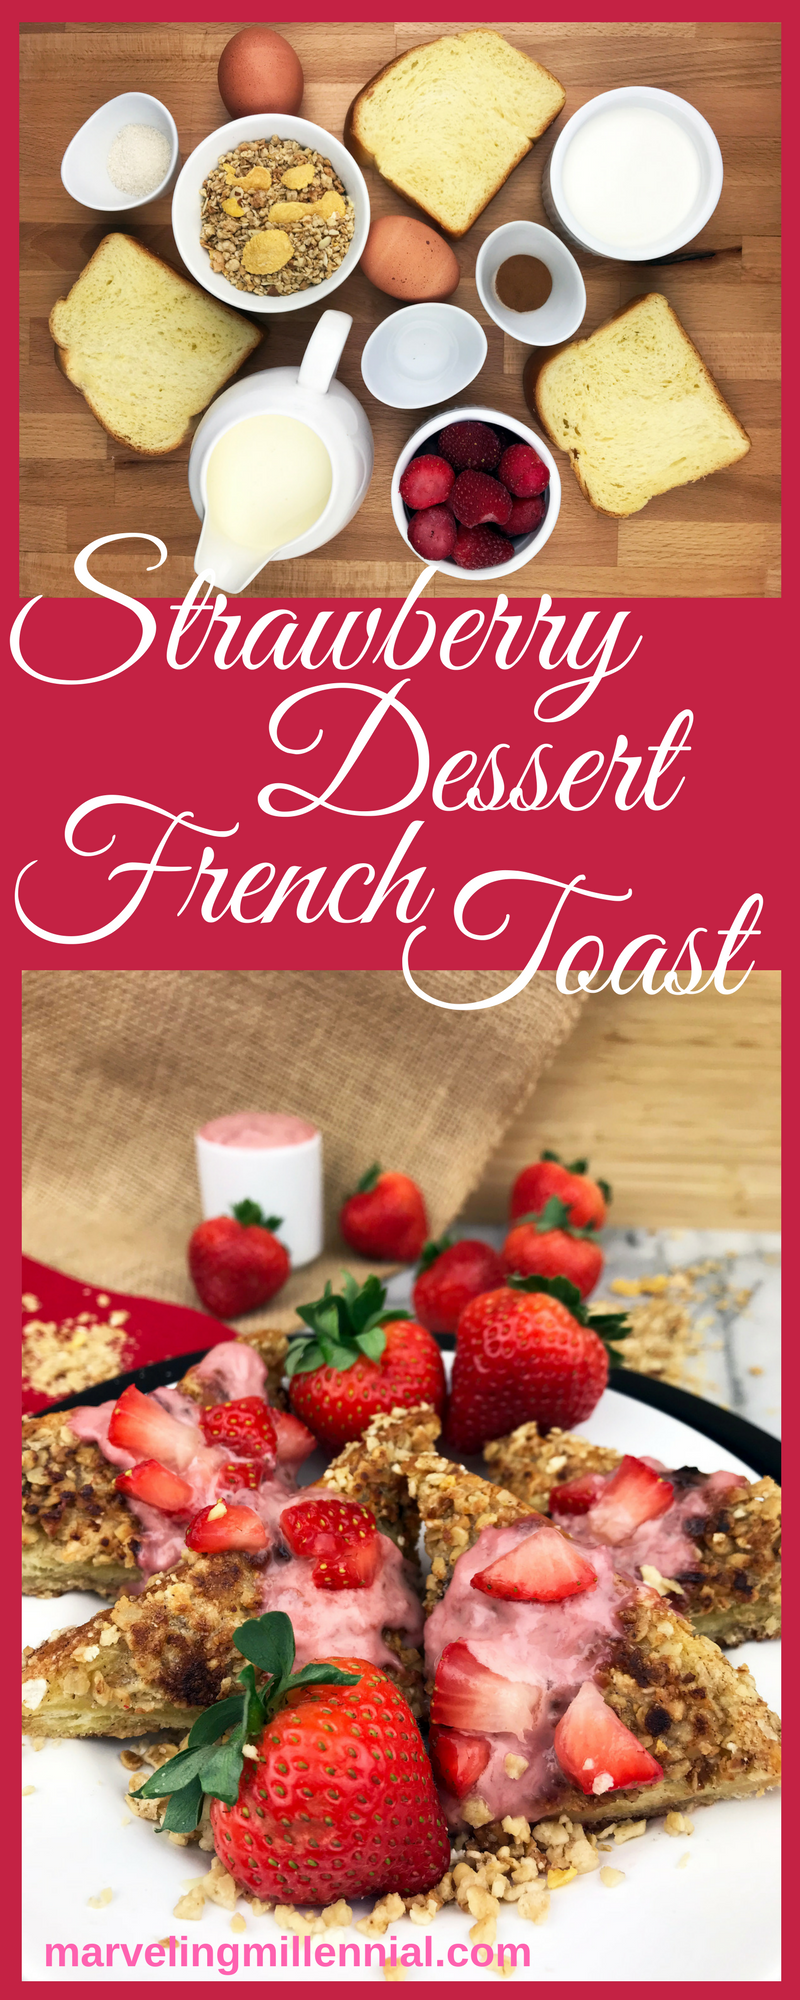 Strawberry Dessert French Toast. Perfect for Valentine's Day breakfast. Perfect for Breakfast in Bed during the weekend. This French Toast Recipe is perfect for breakfast in bed on Valentine's Day. #vday #frenchtoast